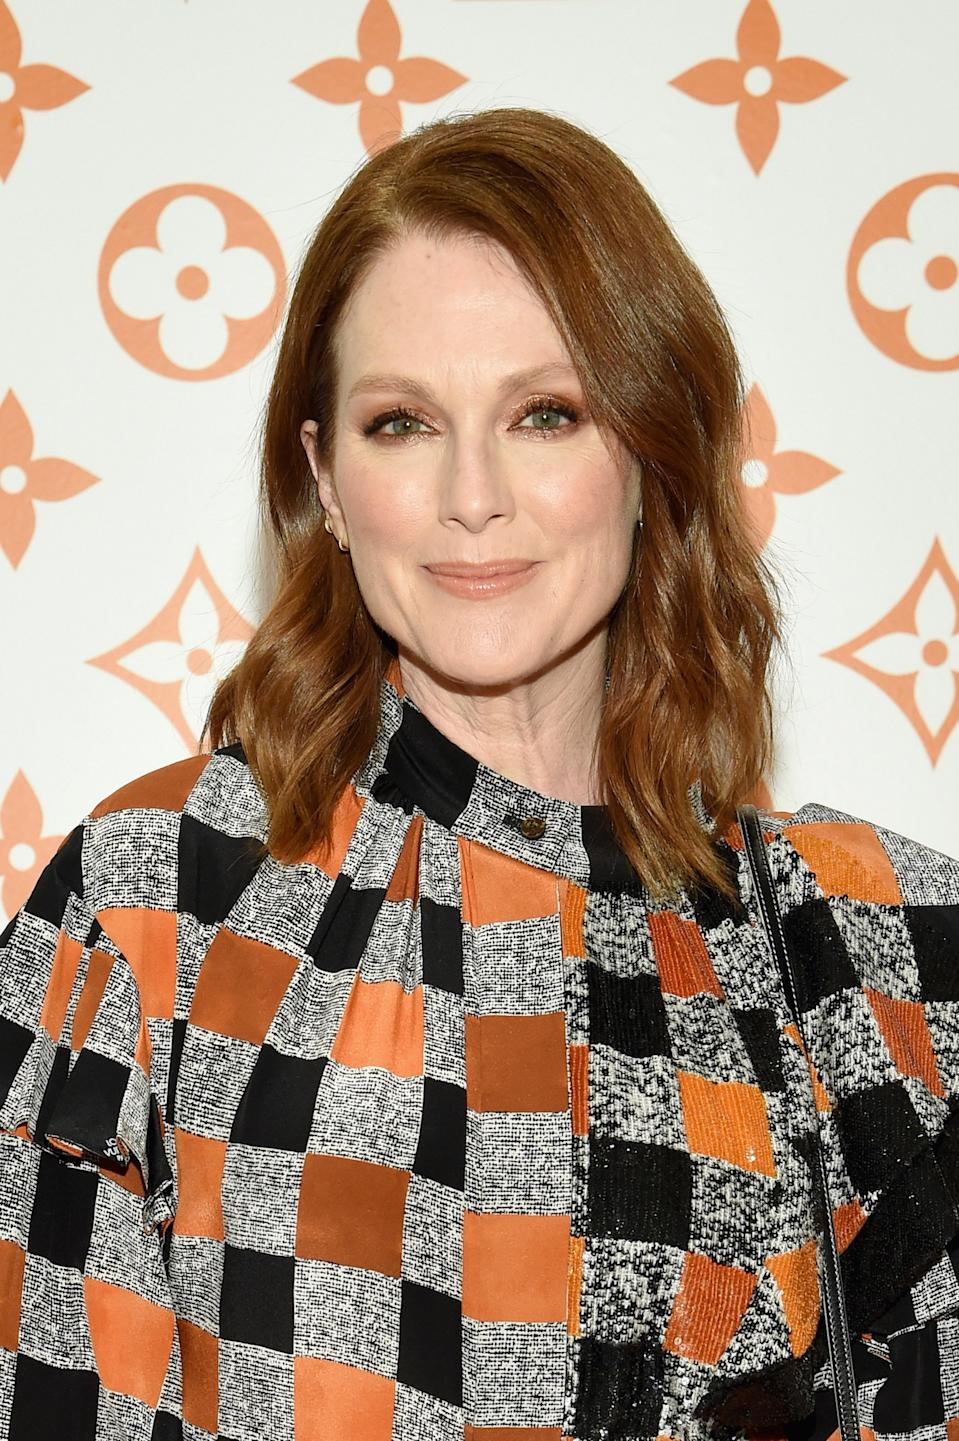 """Julianne Moore changed her name from Julie Anne Smith out of practicality. """"There was already a Julie Smith, a Julie Anne Smith, there was everything,"""" she has <a href=""""https://www.nytimes.com/2001/02/11/movies/film-hello-again-clarice-but-you-ve-changed.html"""" rel=""""nofollow noopener"""" target=""""_blank"""" data-ylk=""""slk:said"""" class=""""link rapid-noclick-resp"""">said</a>. """"My father's middle name is Moore; my mother's name is Anne. So I just slammed the Anne onto the Julie. That way I could use both of their names and not hurt anyone's feelings. But it's horrible to change your name. I'd been Julie Smith my whole life, and I didn't want to change it."""""""